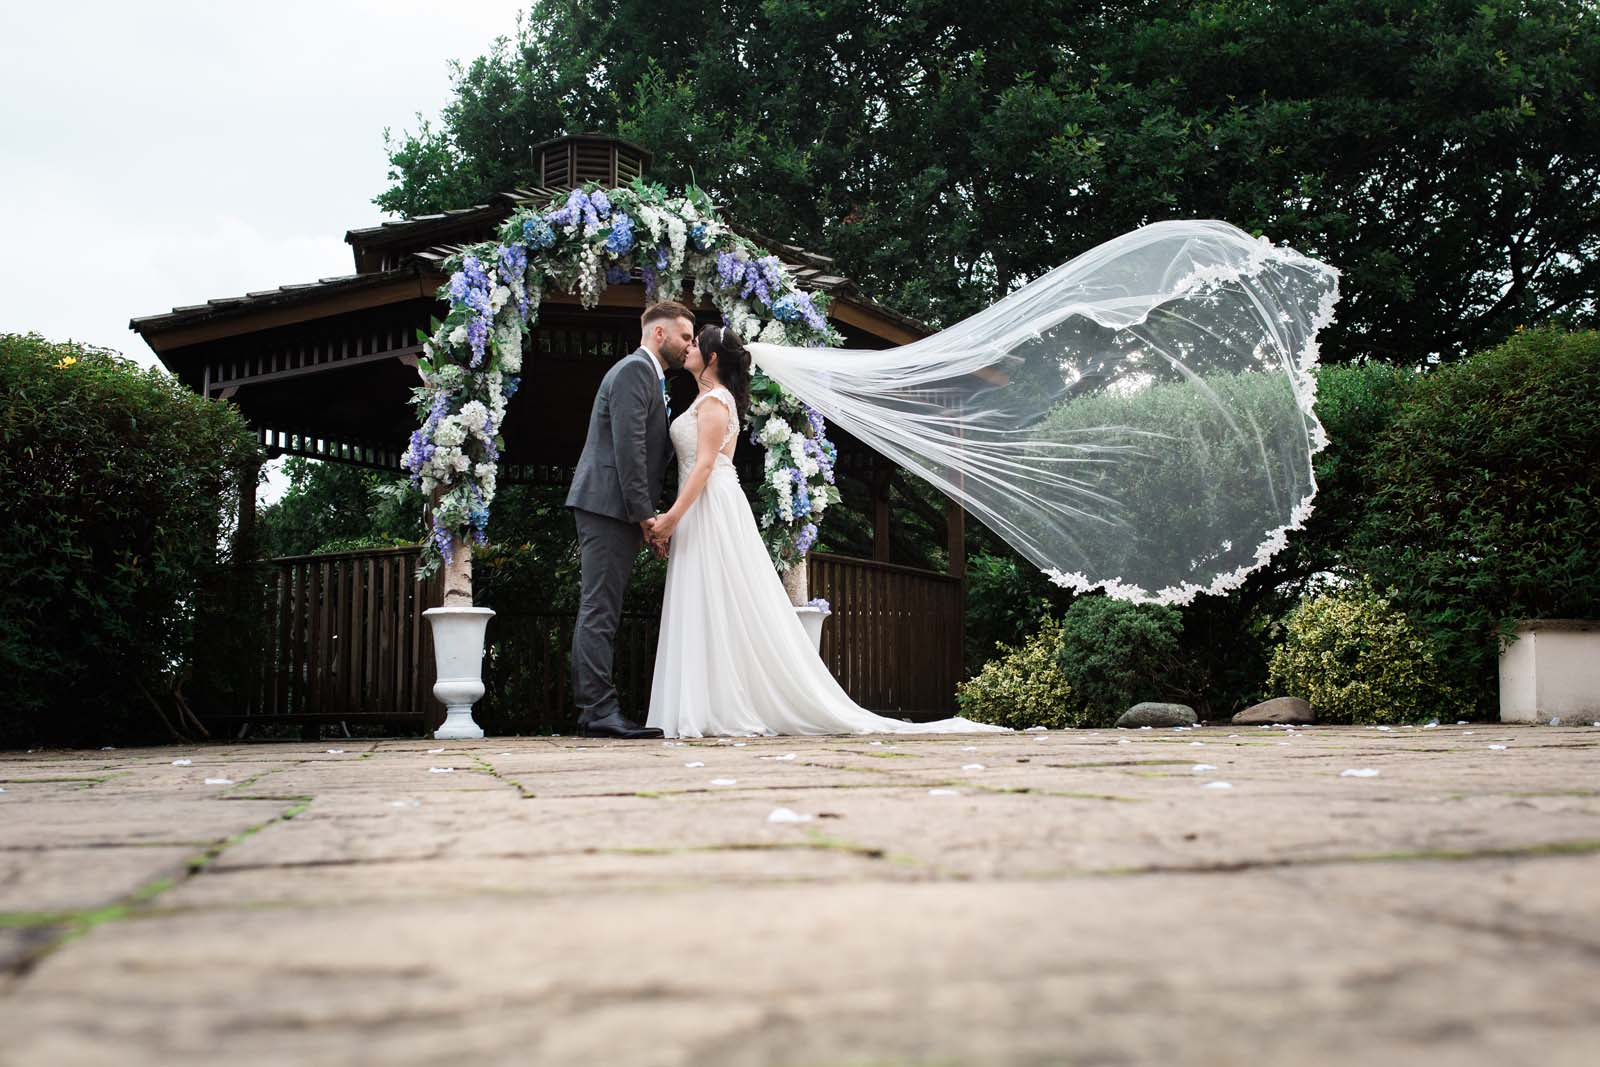 Classic Veil Shot with a Kiss - Heni Fourie Photography, Bucks